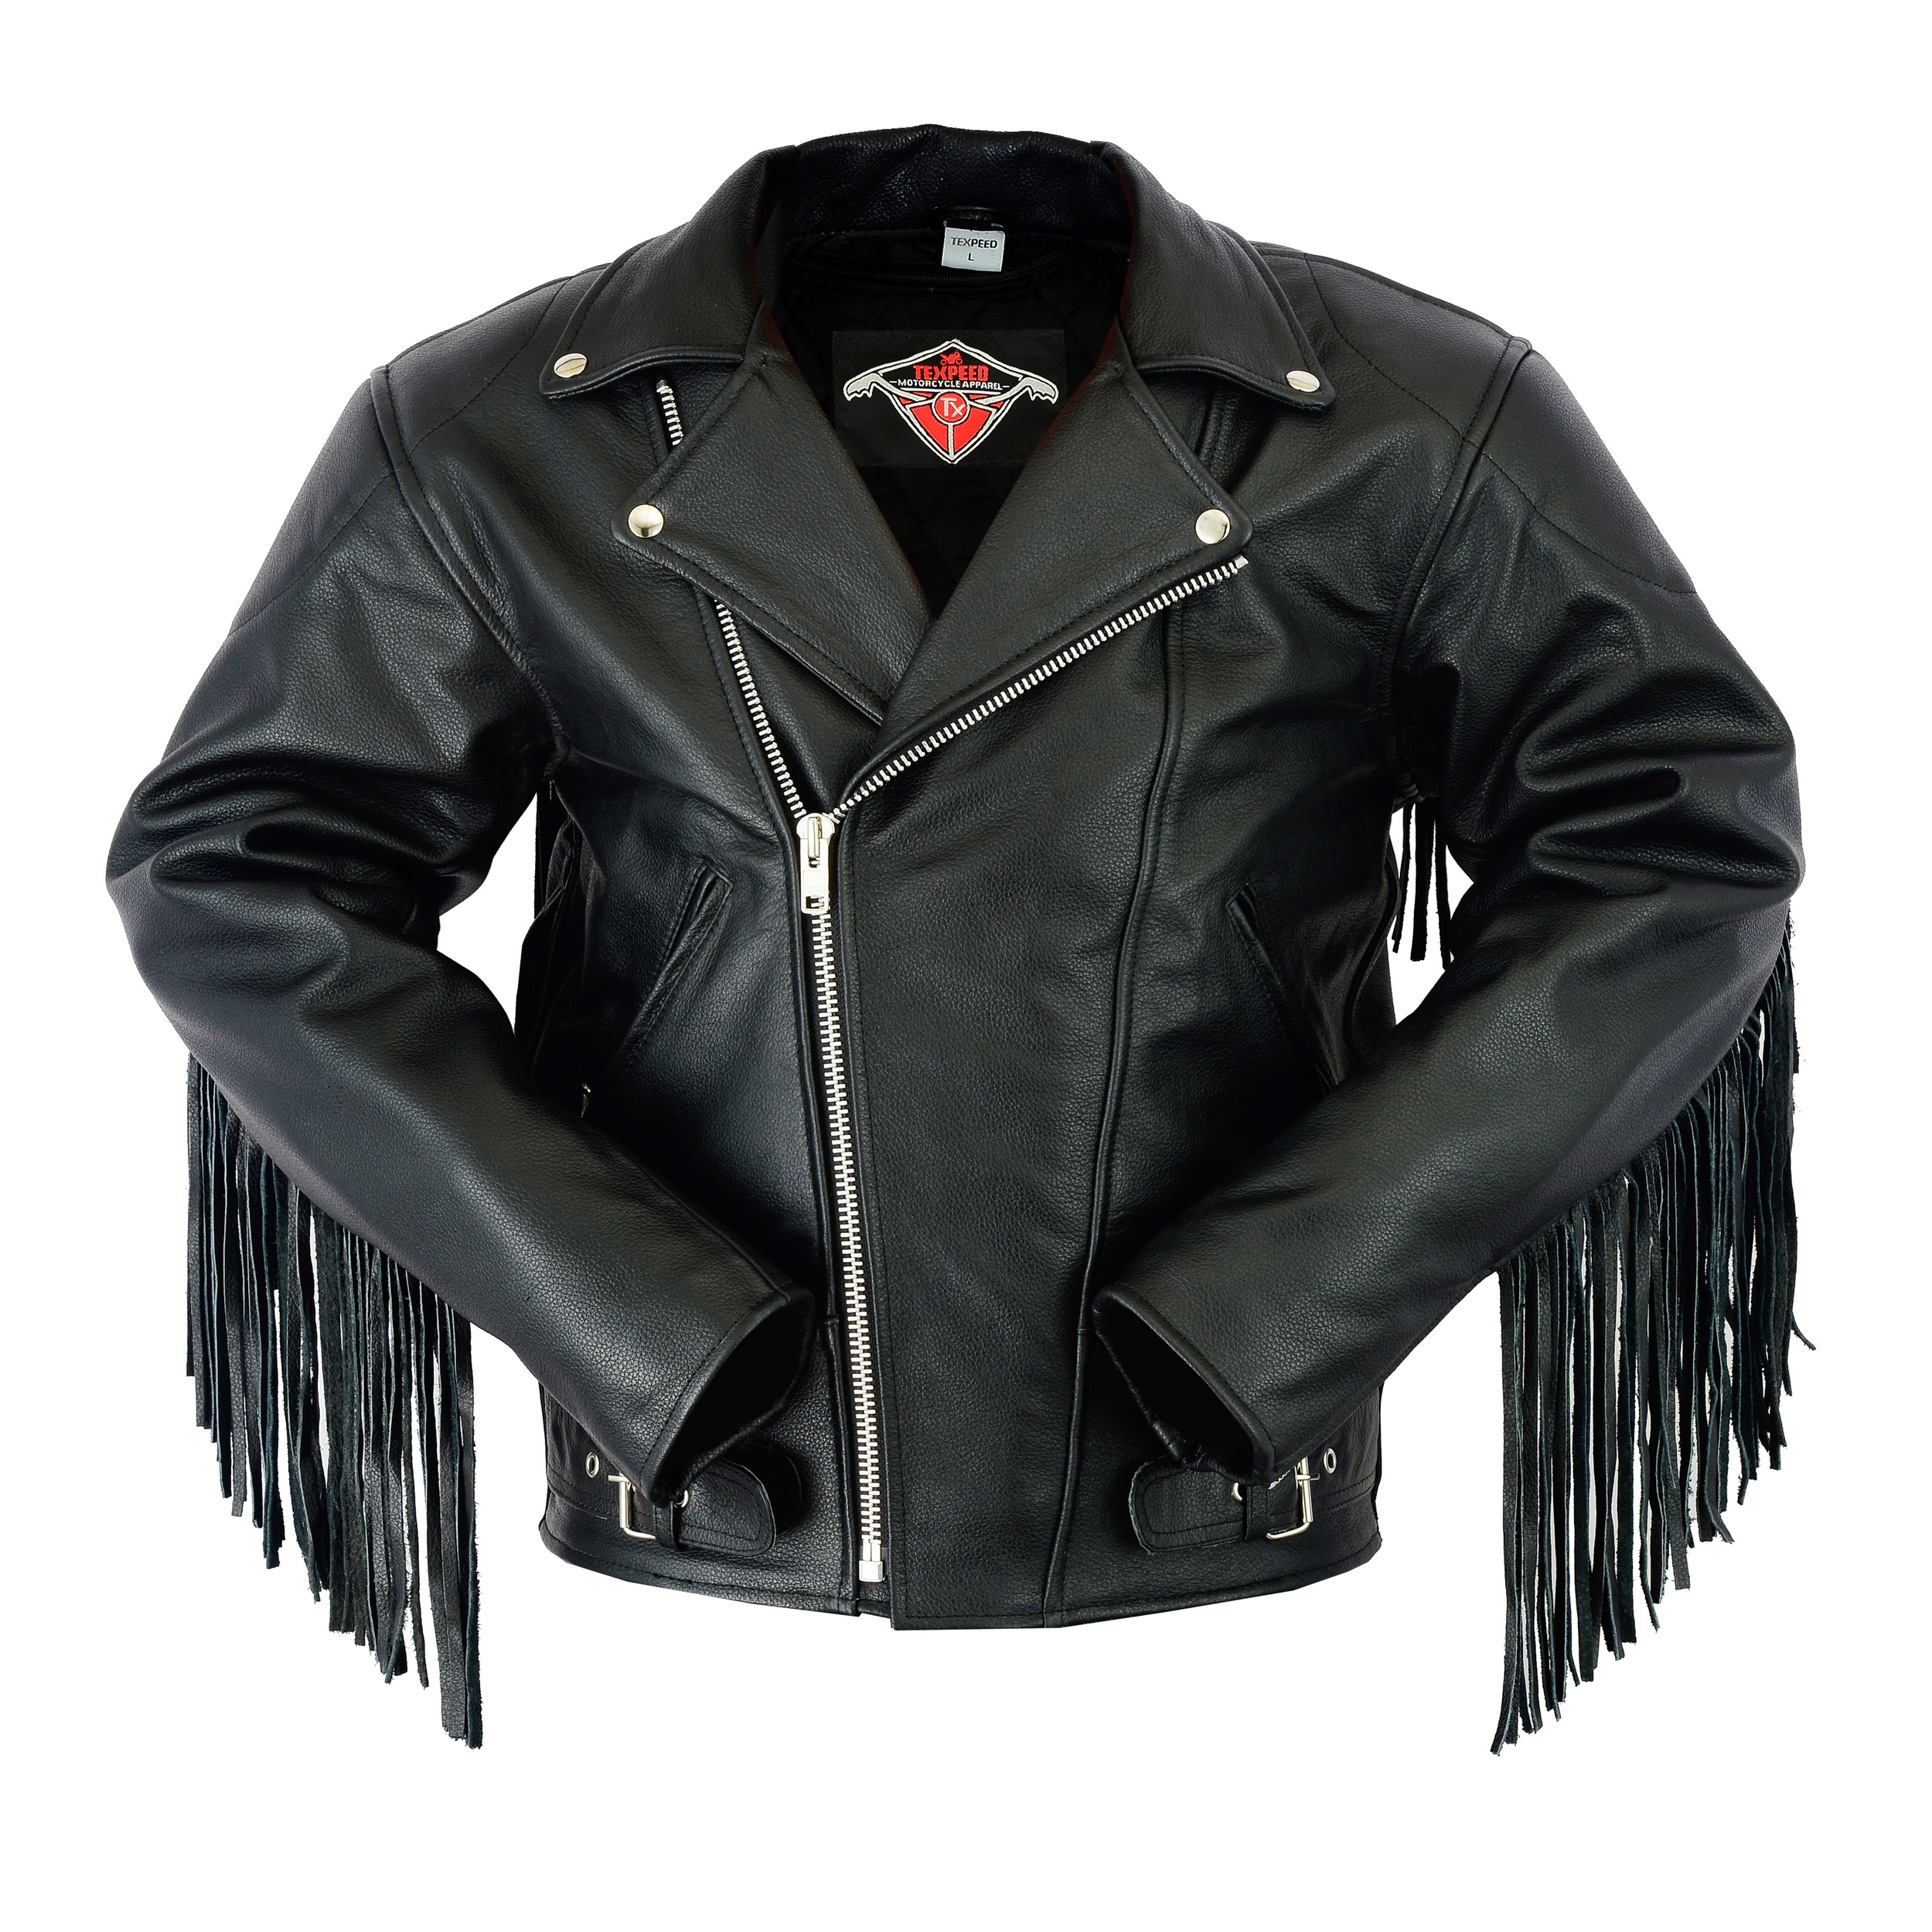 Blouson Femme Cuir Véritable Perfecto Classique Biker Brando Style Motard High Quality Materials Parts & Accessories